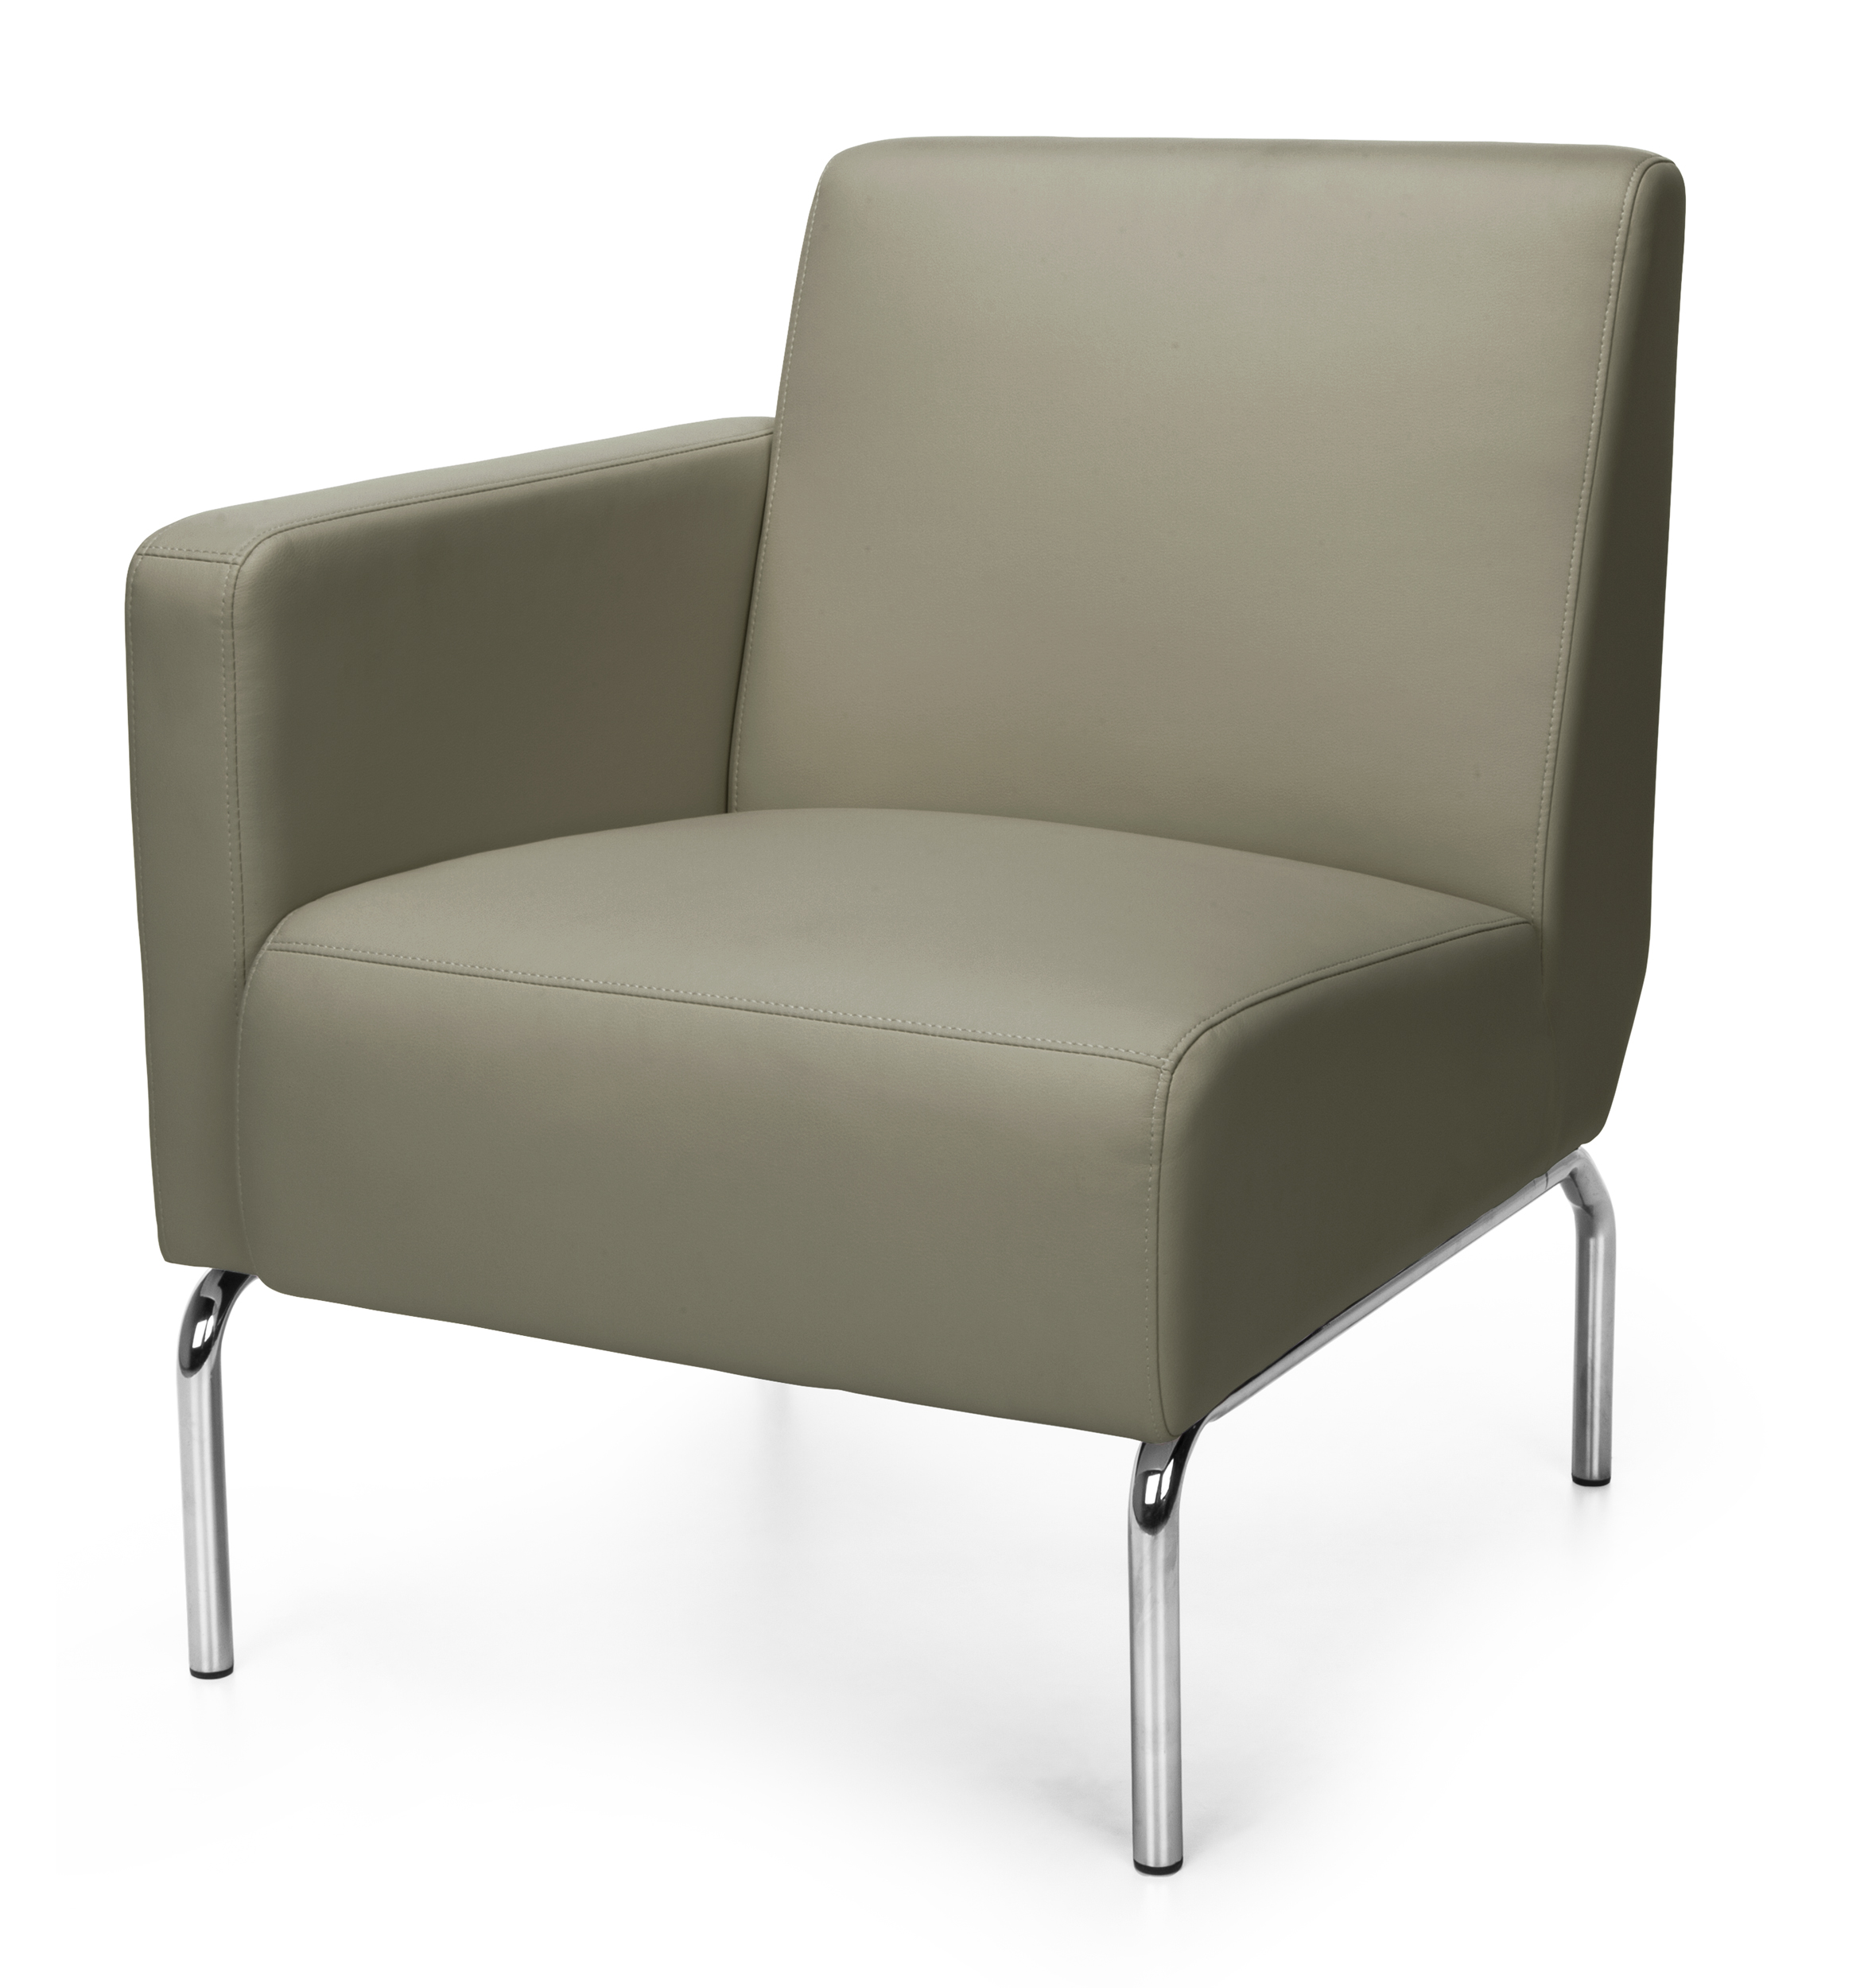 OFM Triumph Series Lounge Chair